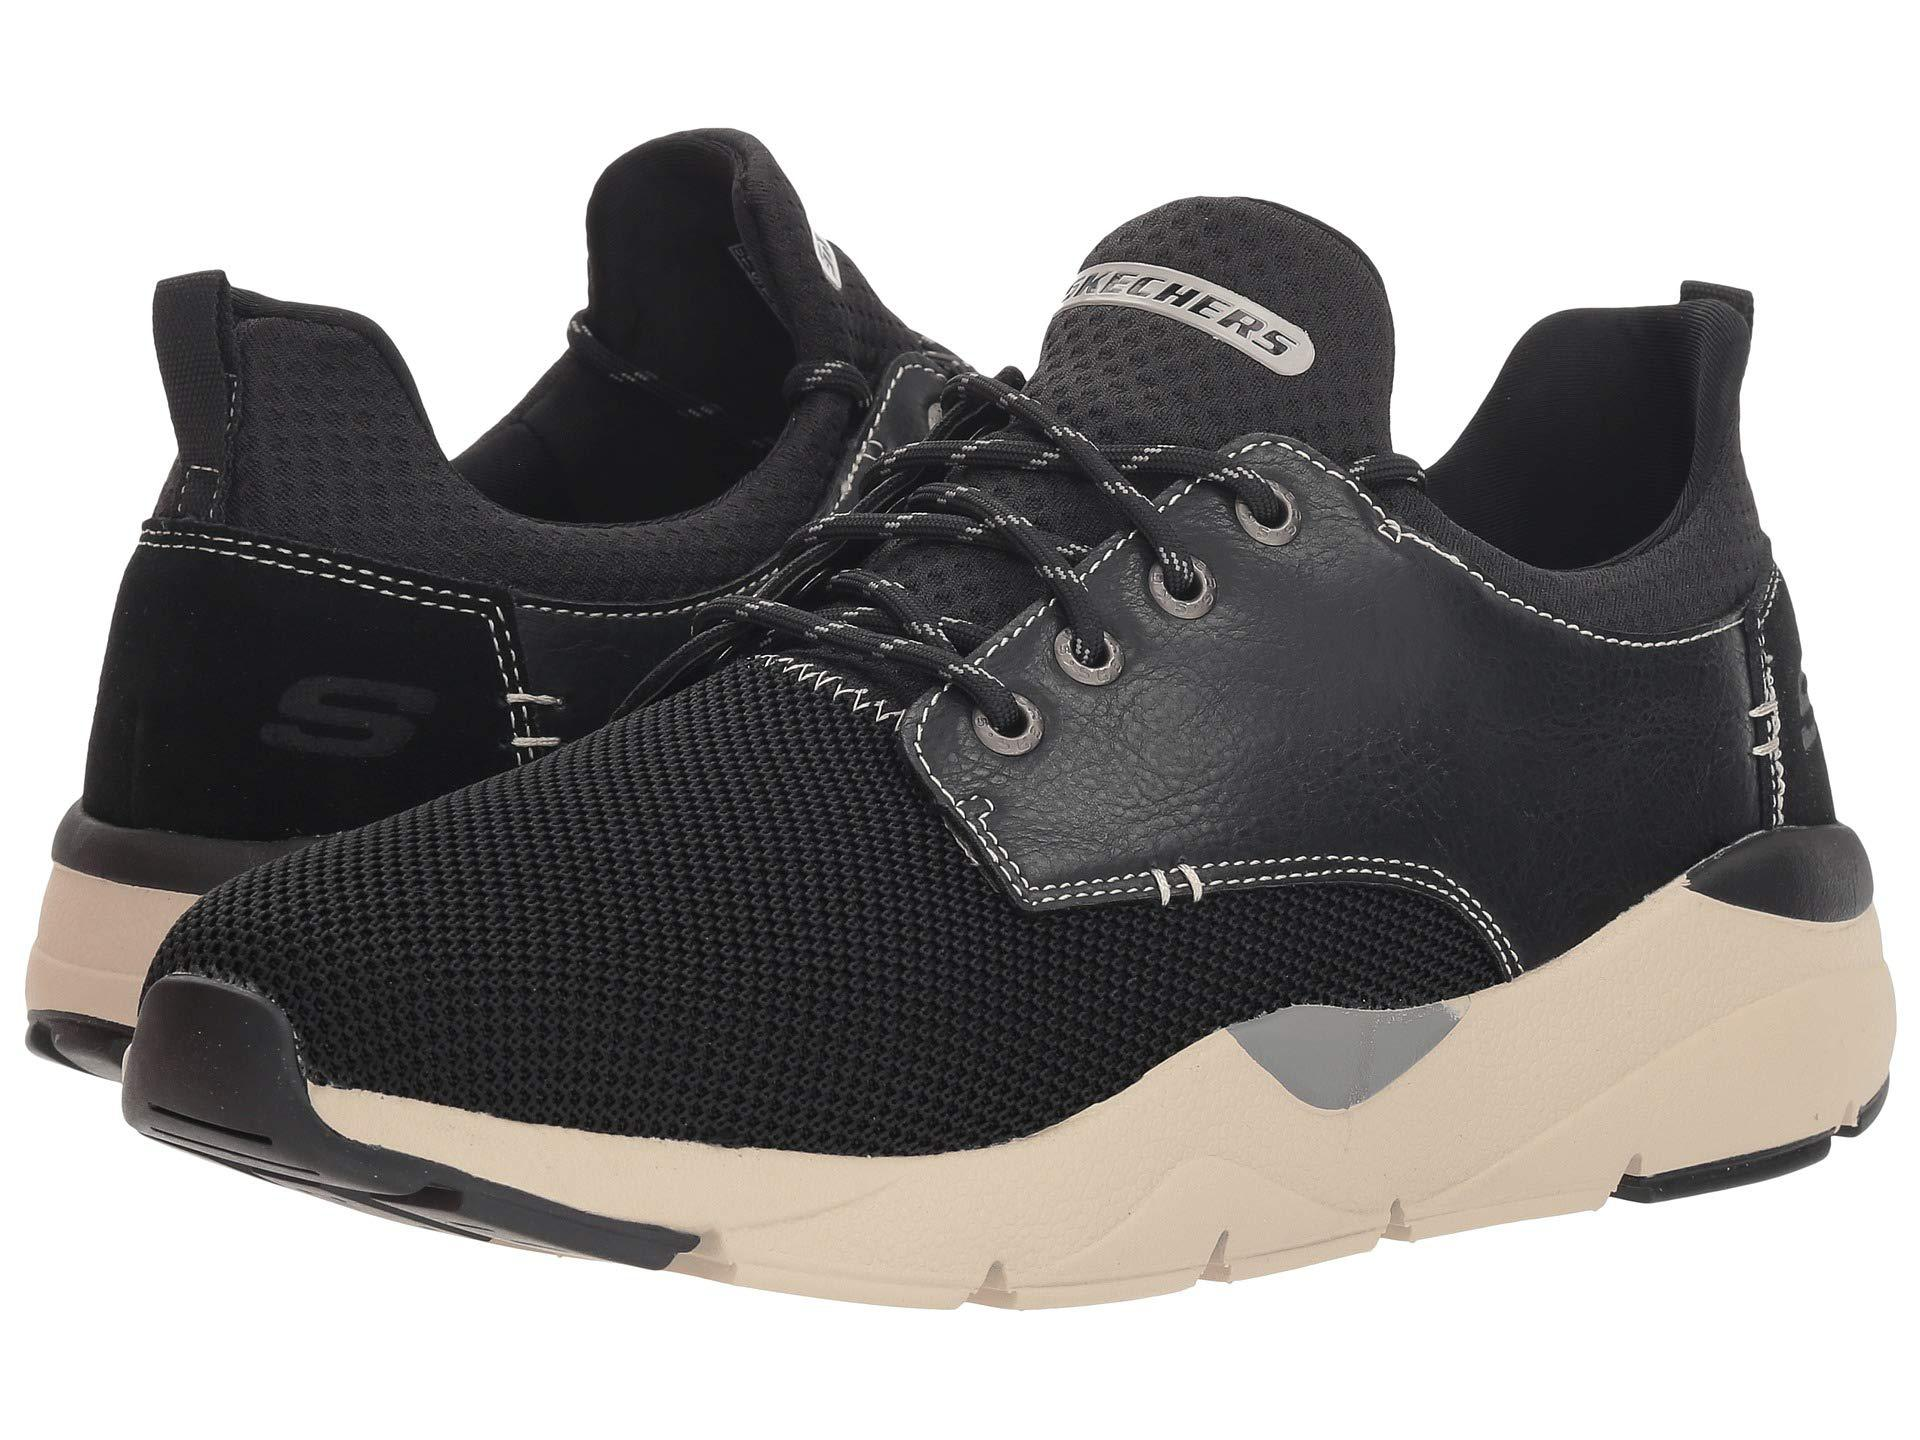 abdc4abad4ca Lyst - Skechers Relaxed Fit® Recent - Sereno in Black for Men